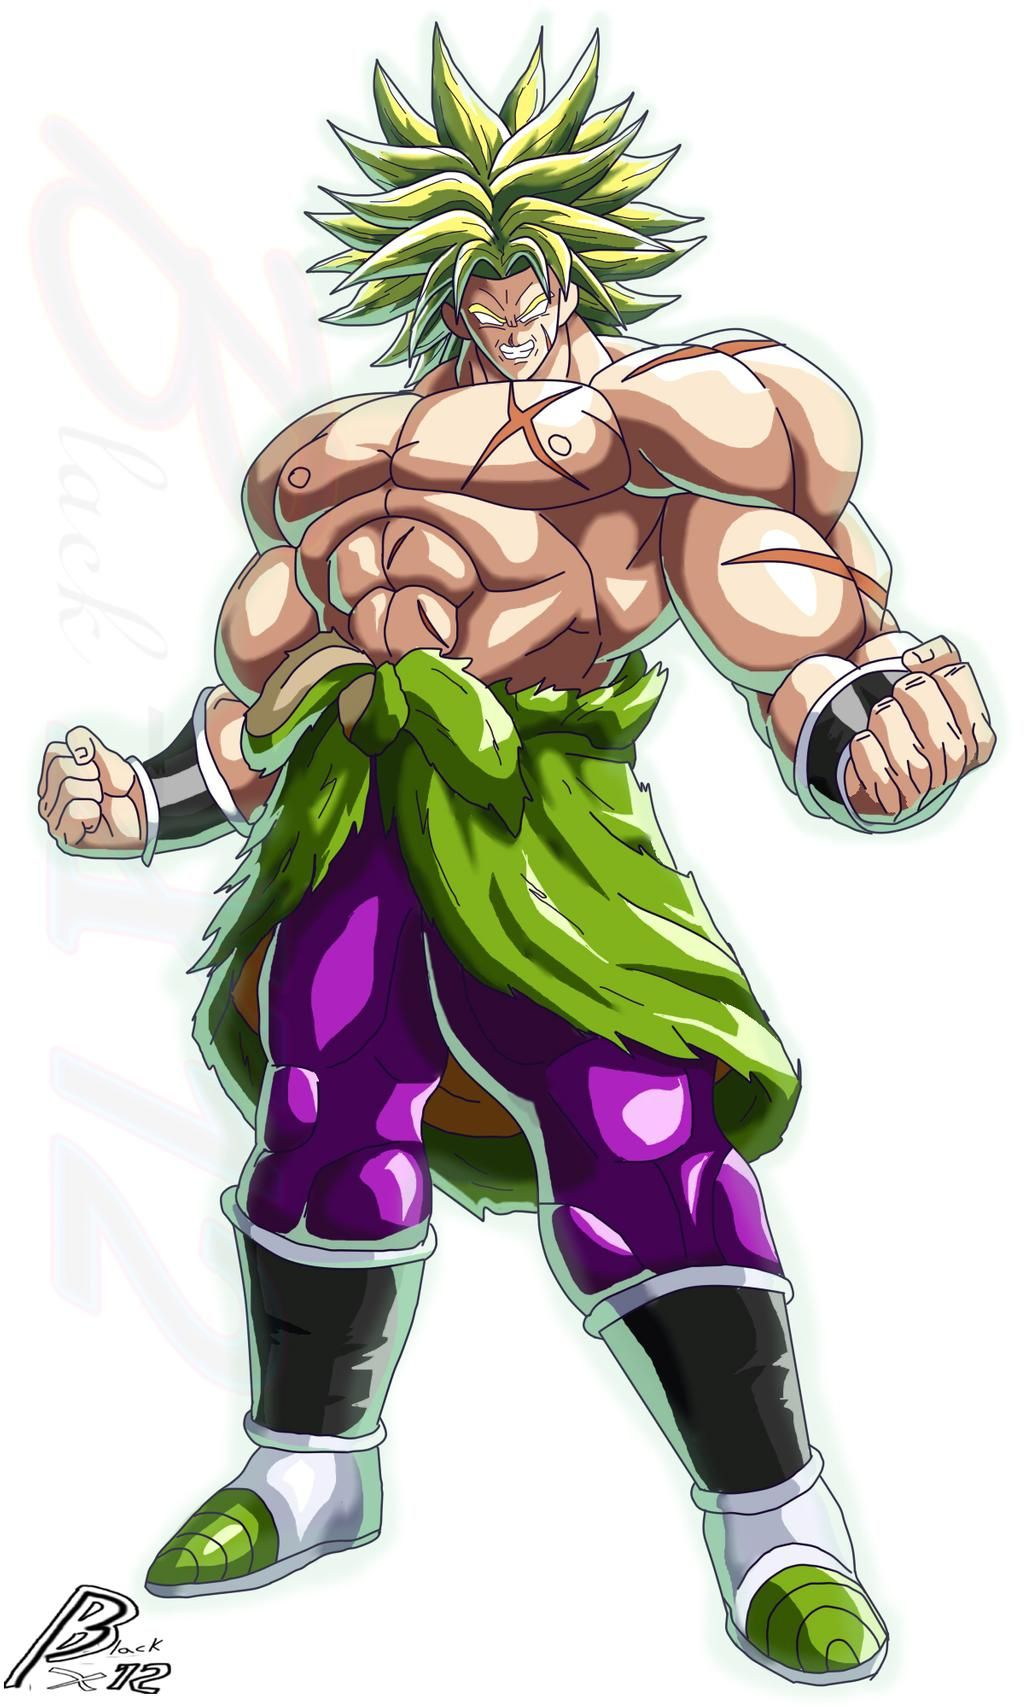 Old Broly (1993) in 2020 Anime dragon ball super, Anime